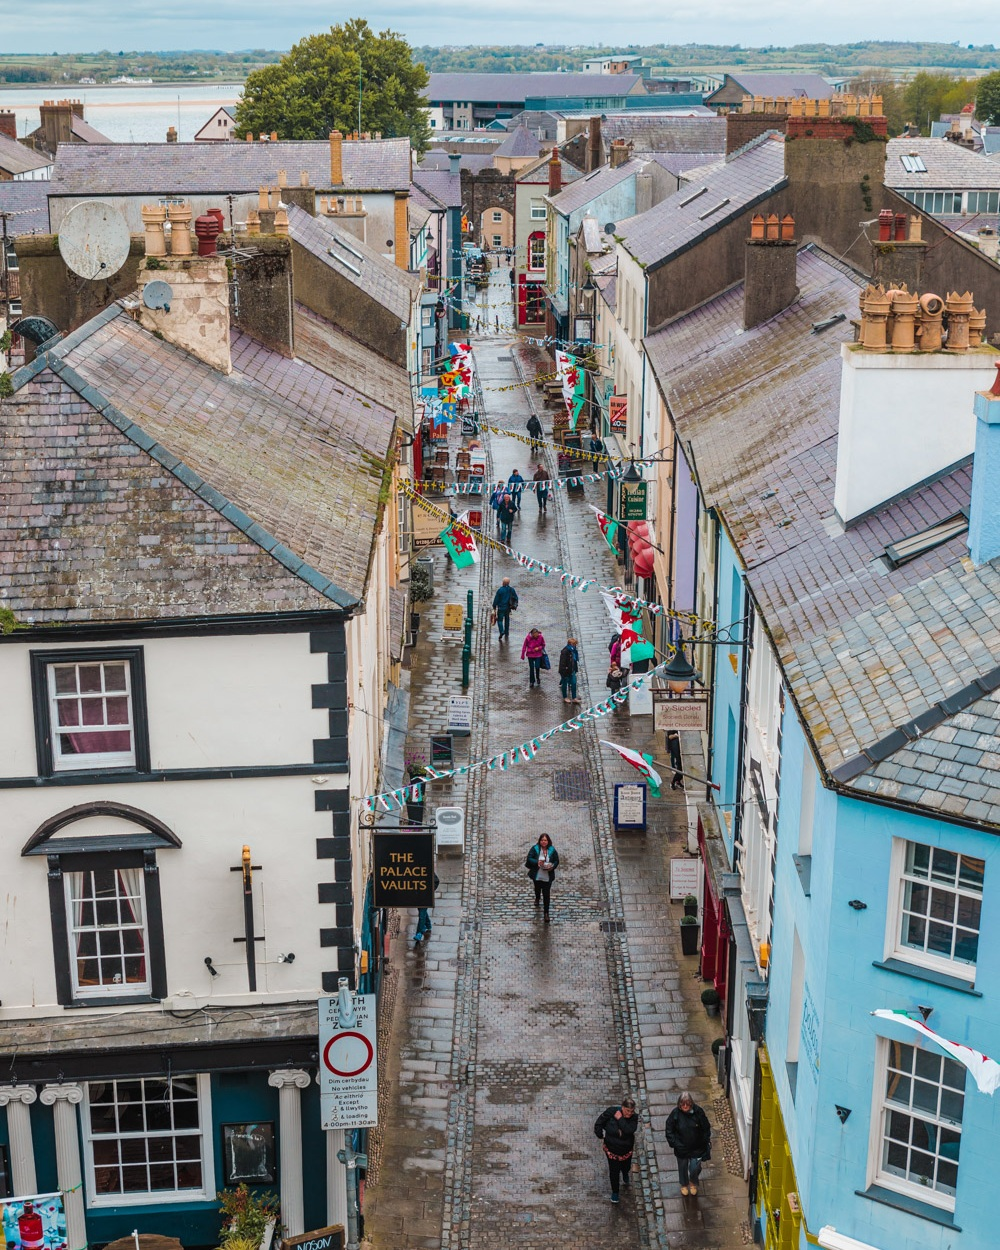 Caernarfon town // The Most Beautiful Places to Visit in Wales // #readysetjetset #wales #uk #welsh #travel #photospots #blogpost